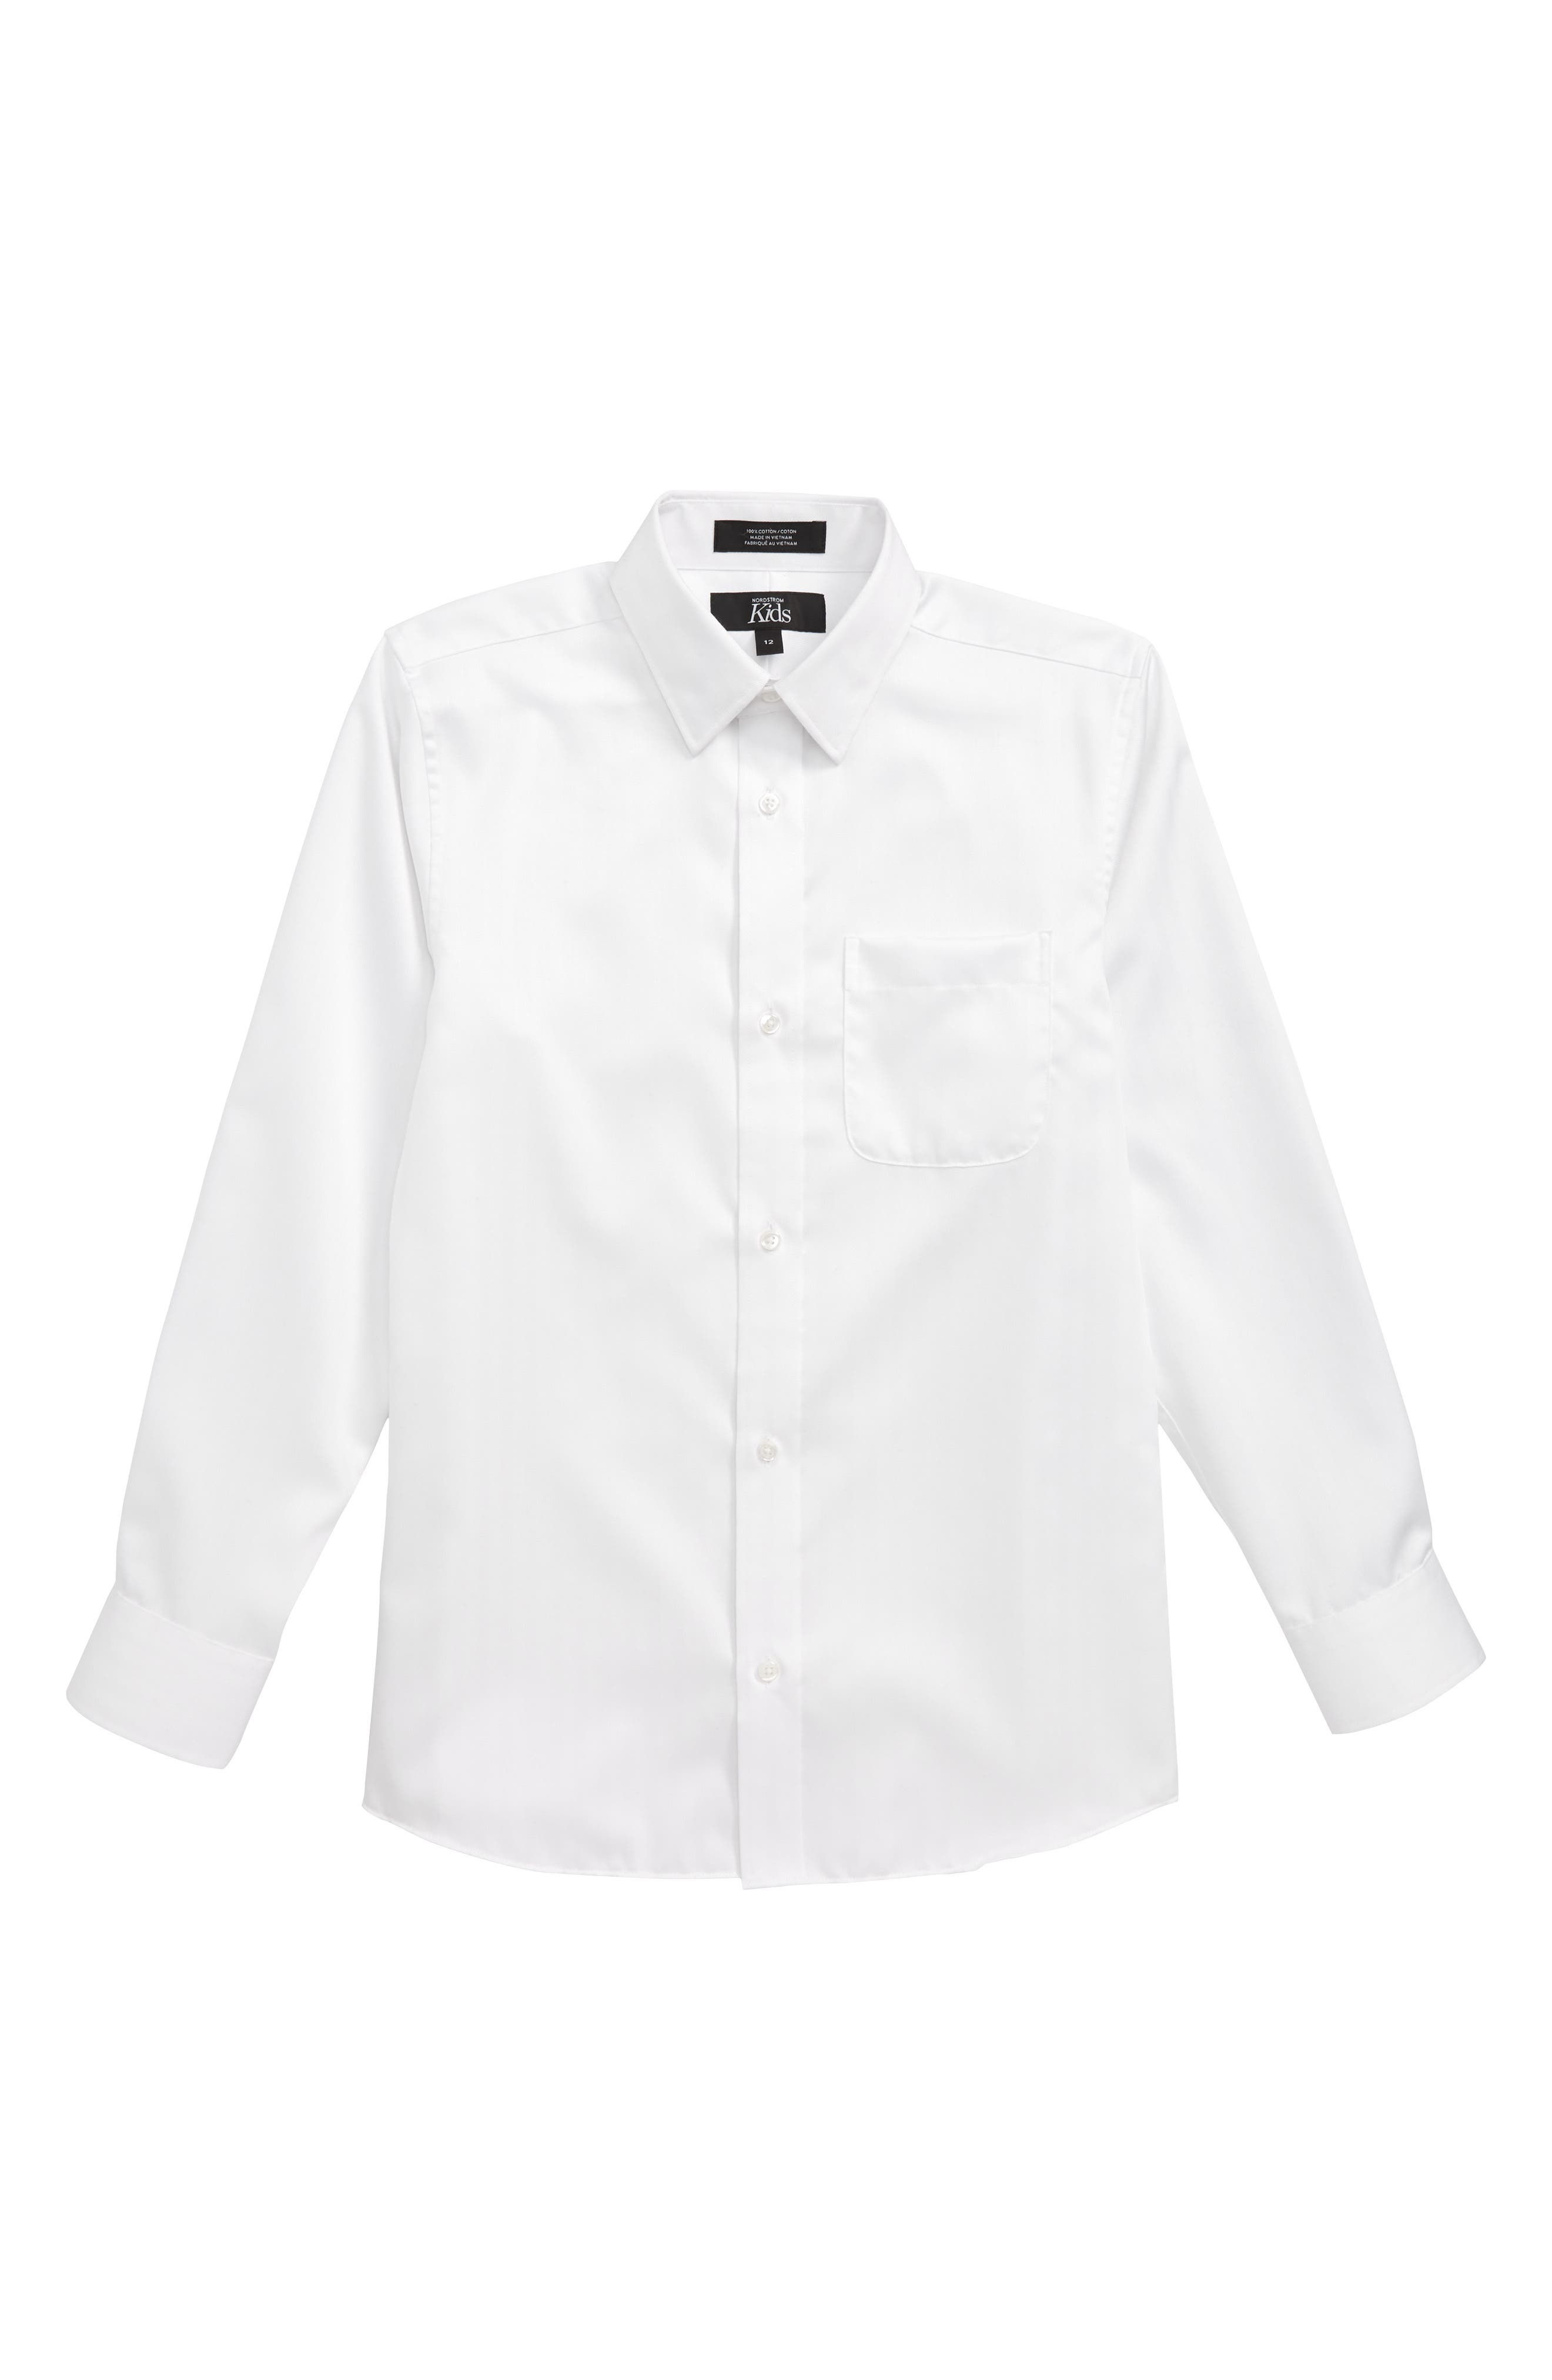 NORDSTROM Textured Dress Shirt, Main, color, 100